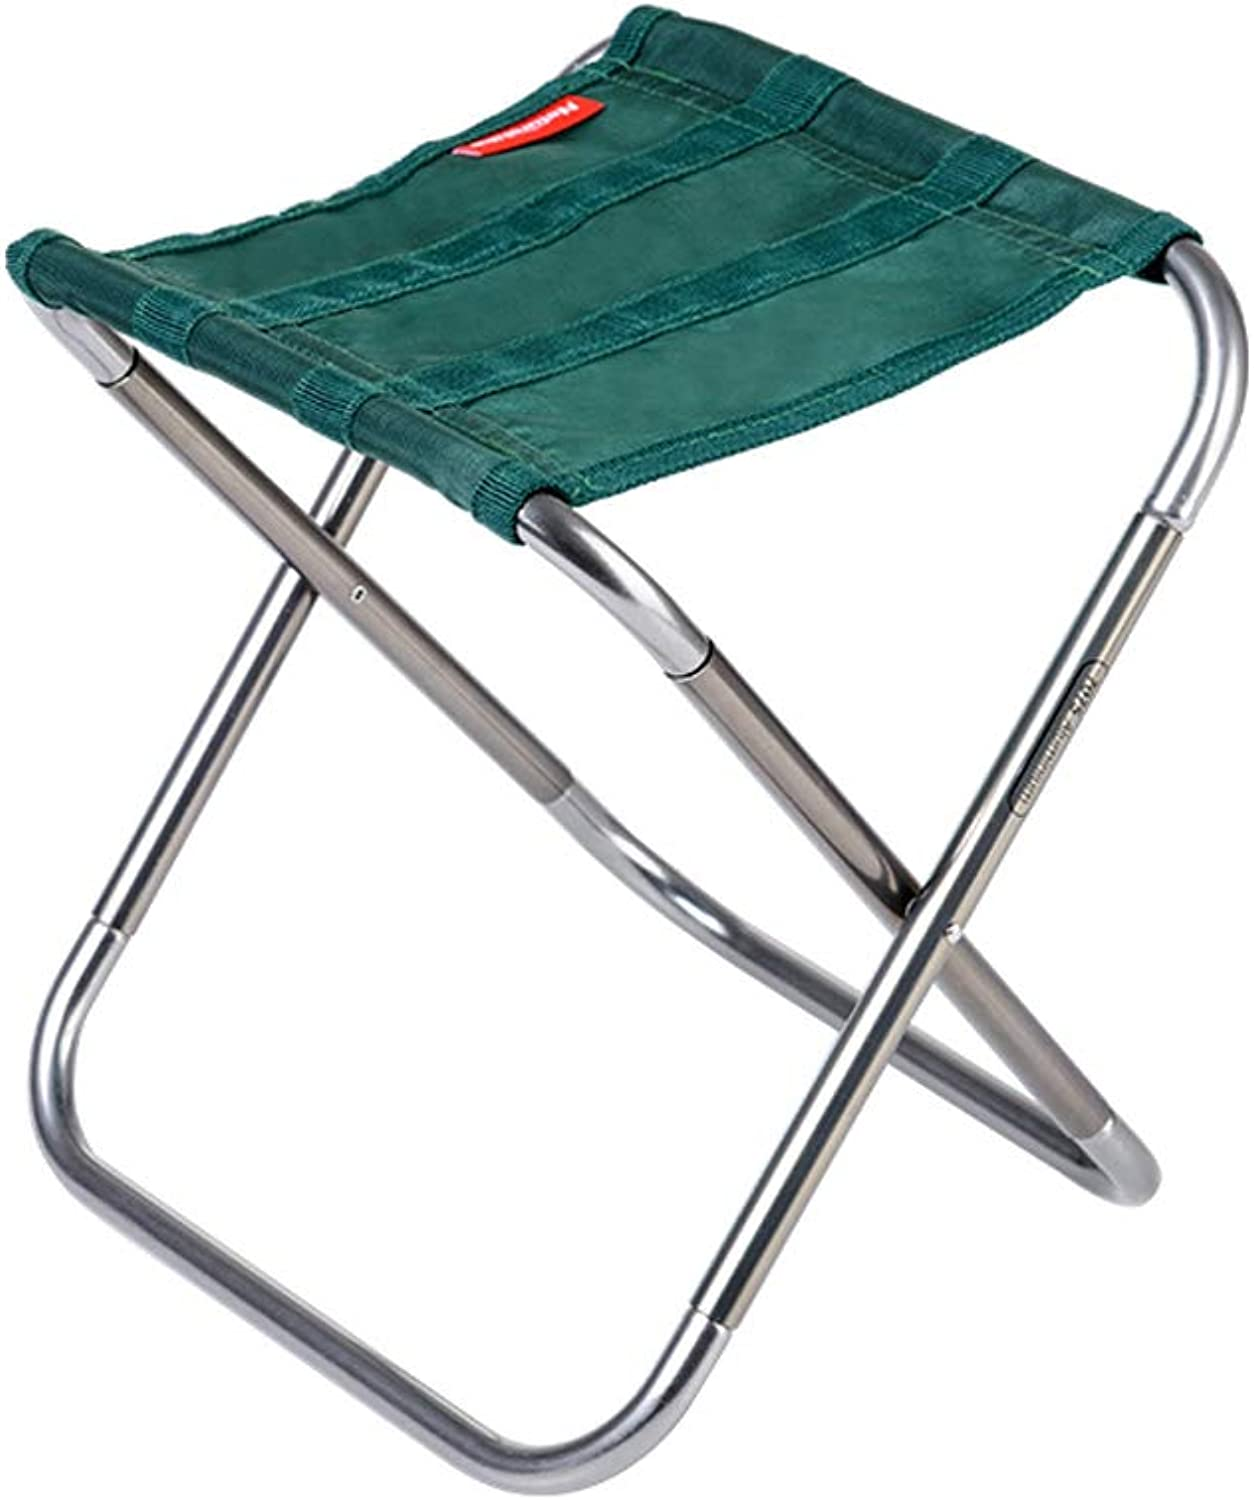 MXD Stool Folding Stool Portable Outdoor Folding Chair Fishing Chair Green